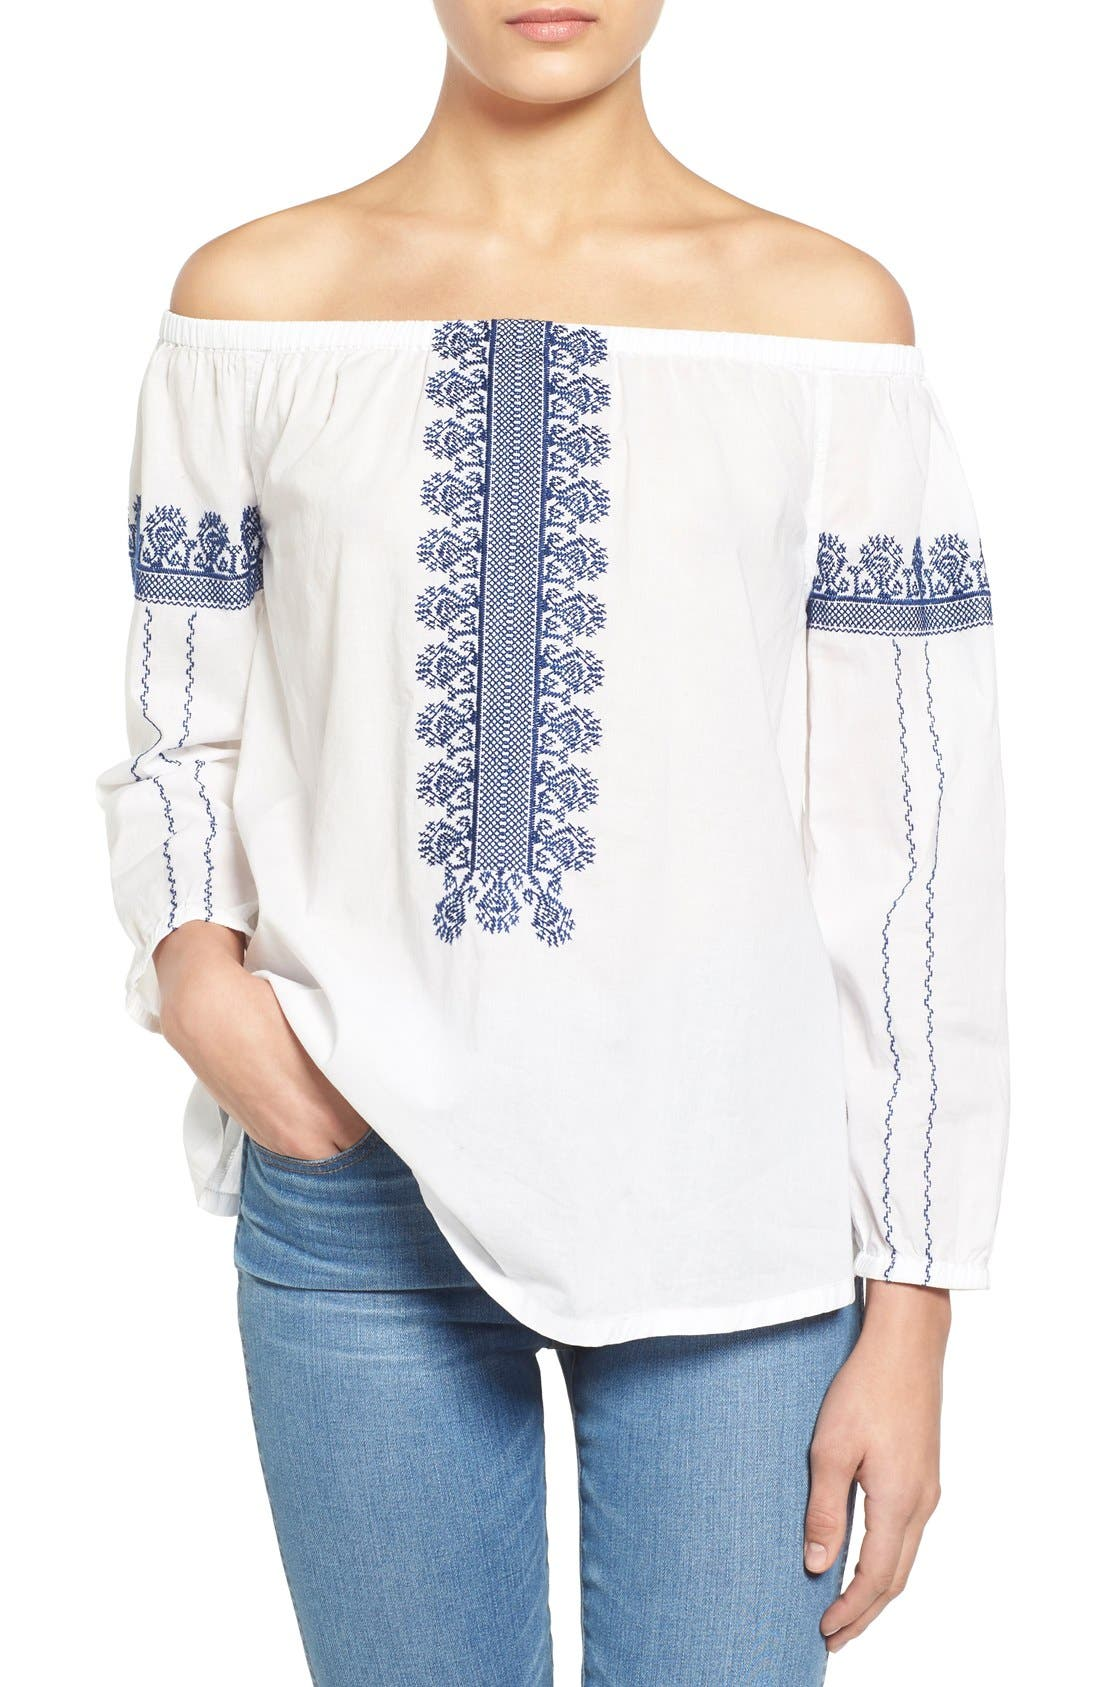 Alternate Image 1 Selected - Madewell 'Folktale' Off the Shoulder Top